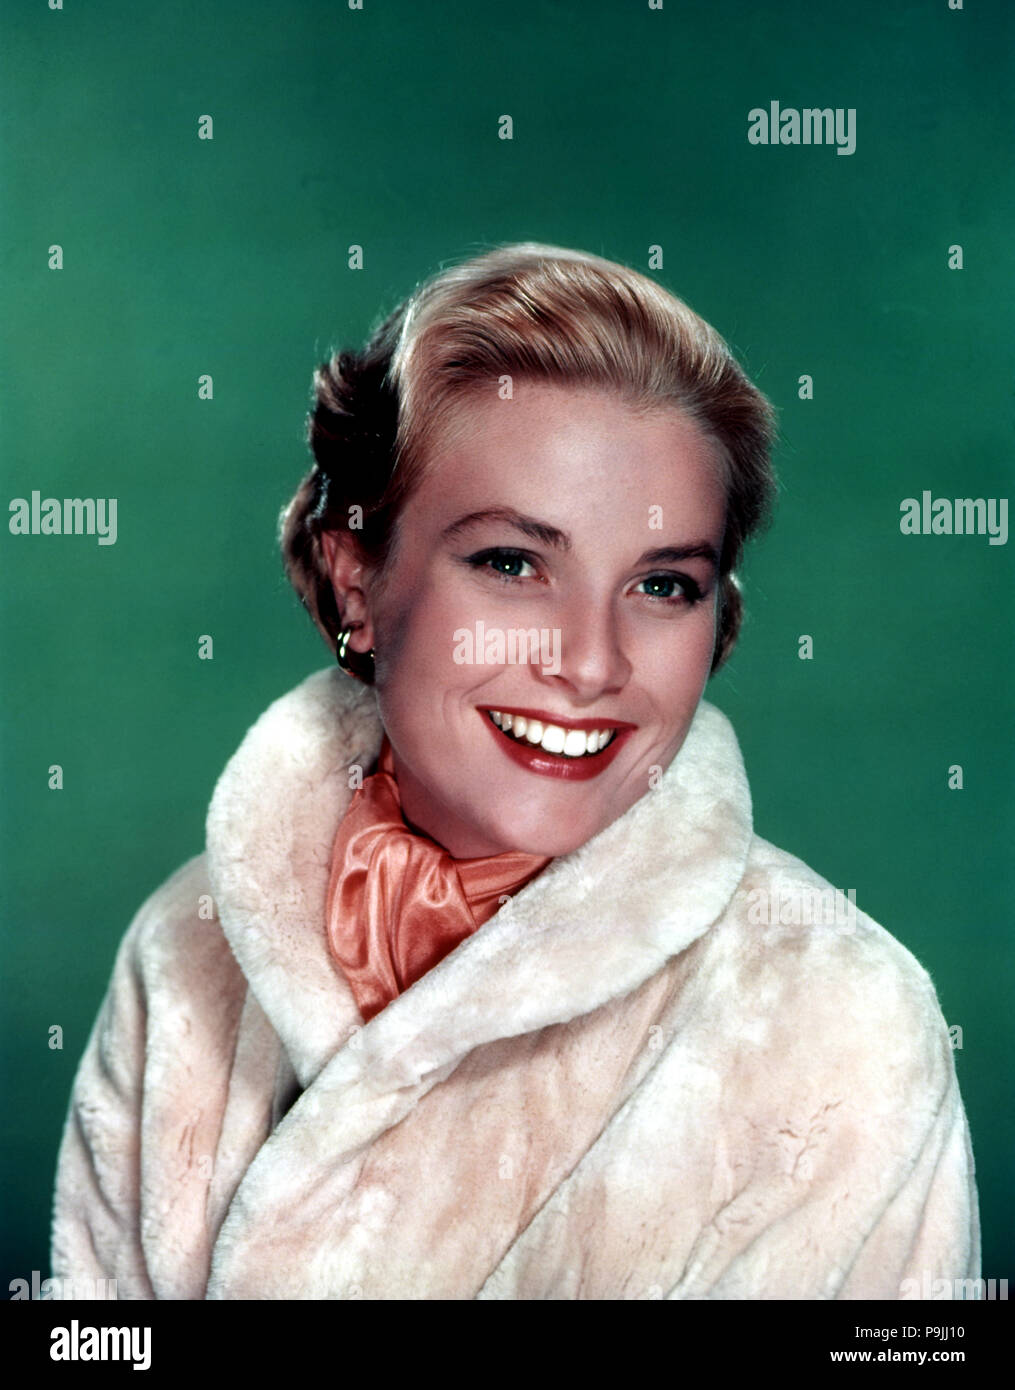 Grace Kelly (1928-1982), American actress, Princess of Monaco for his marriage to Rainier III. - Stock Image